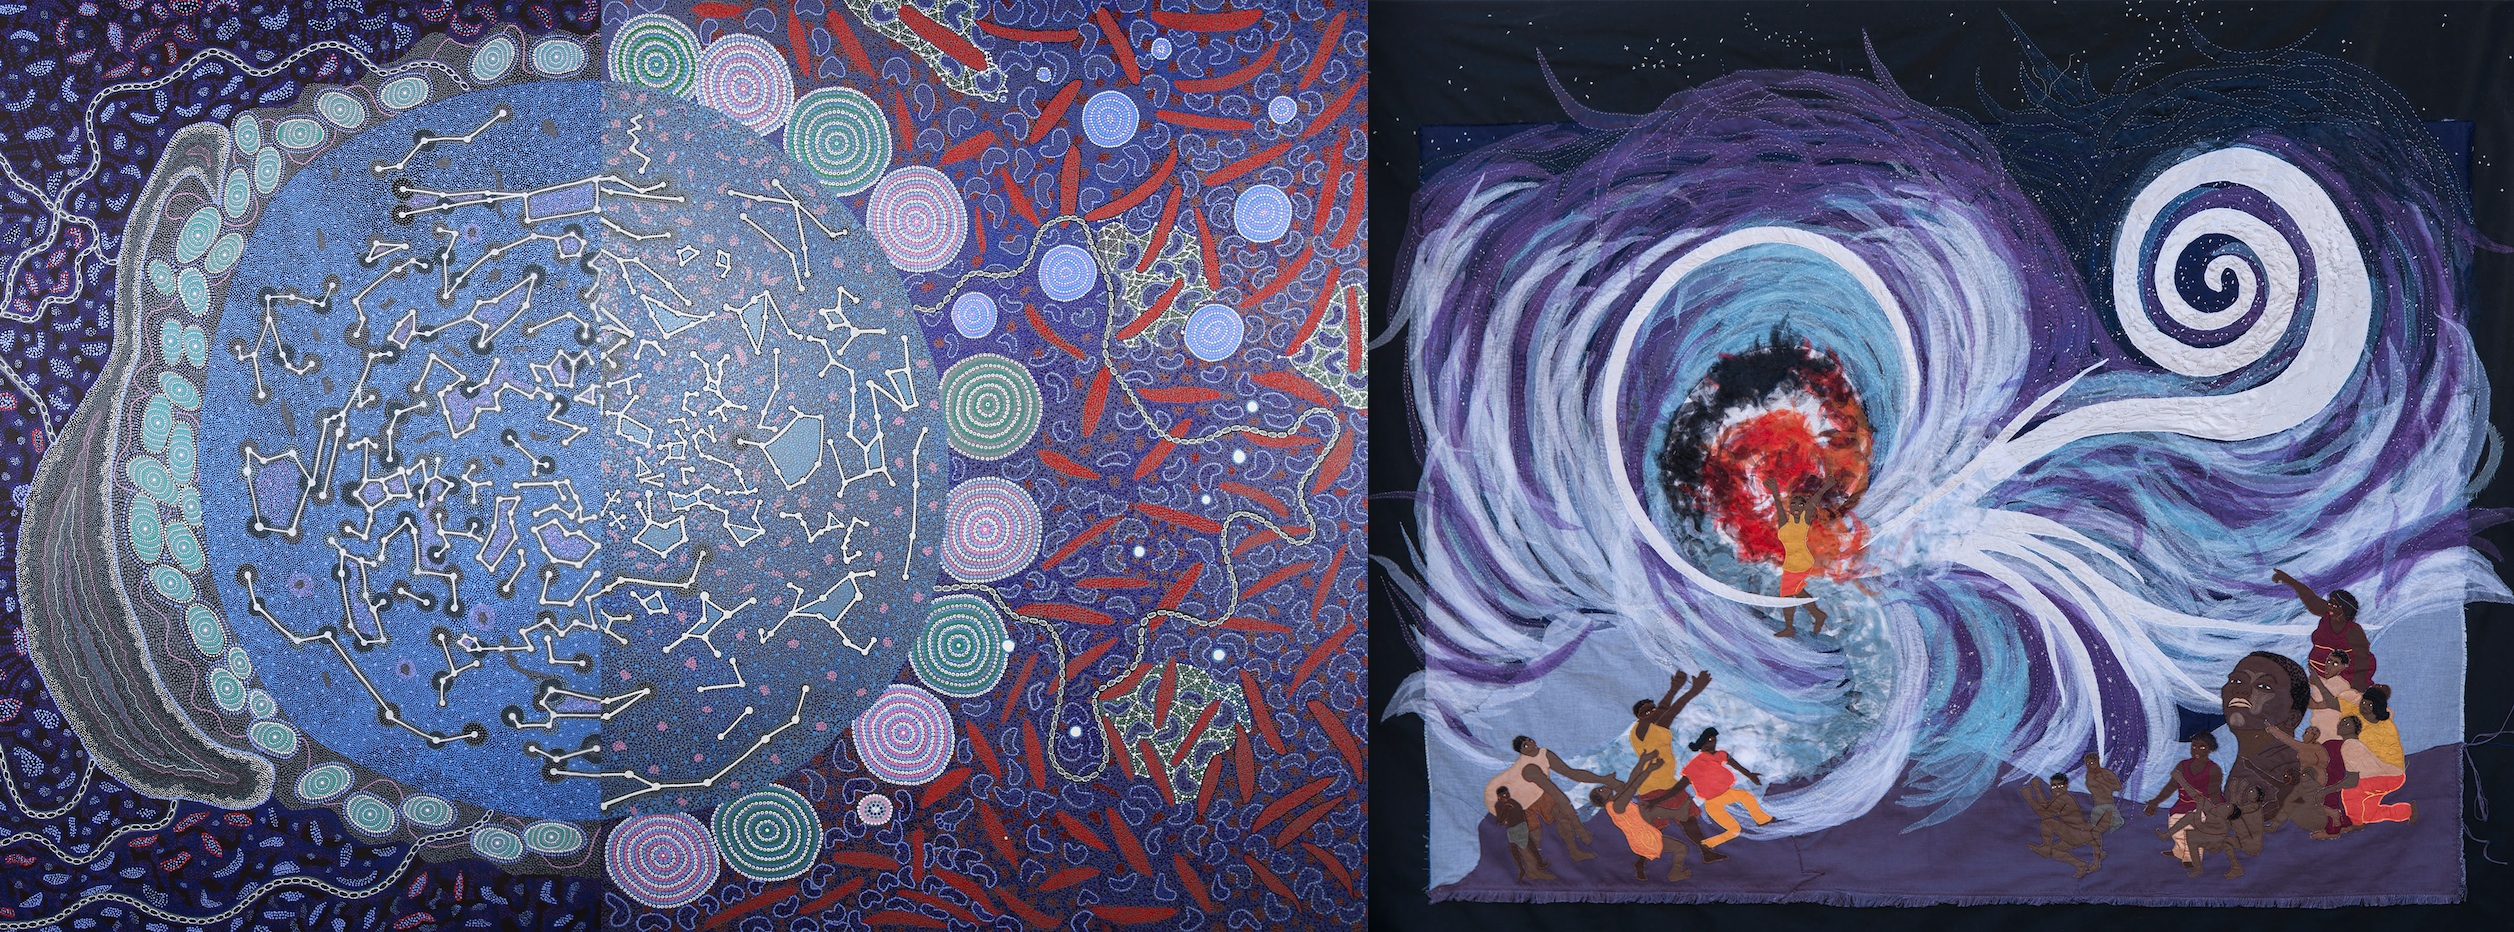 Shared Sky - the SKA's indigenous art/astronomy exhibition ...